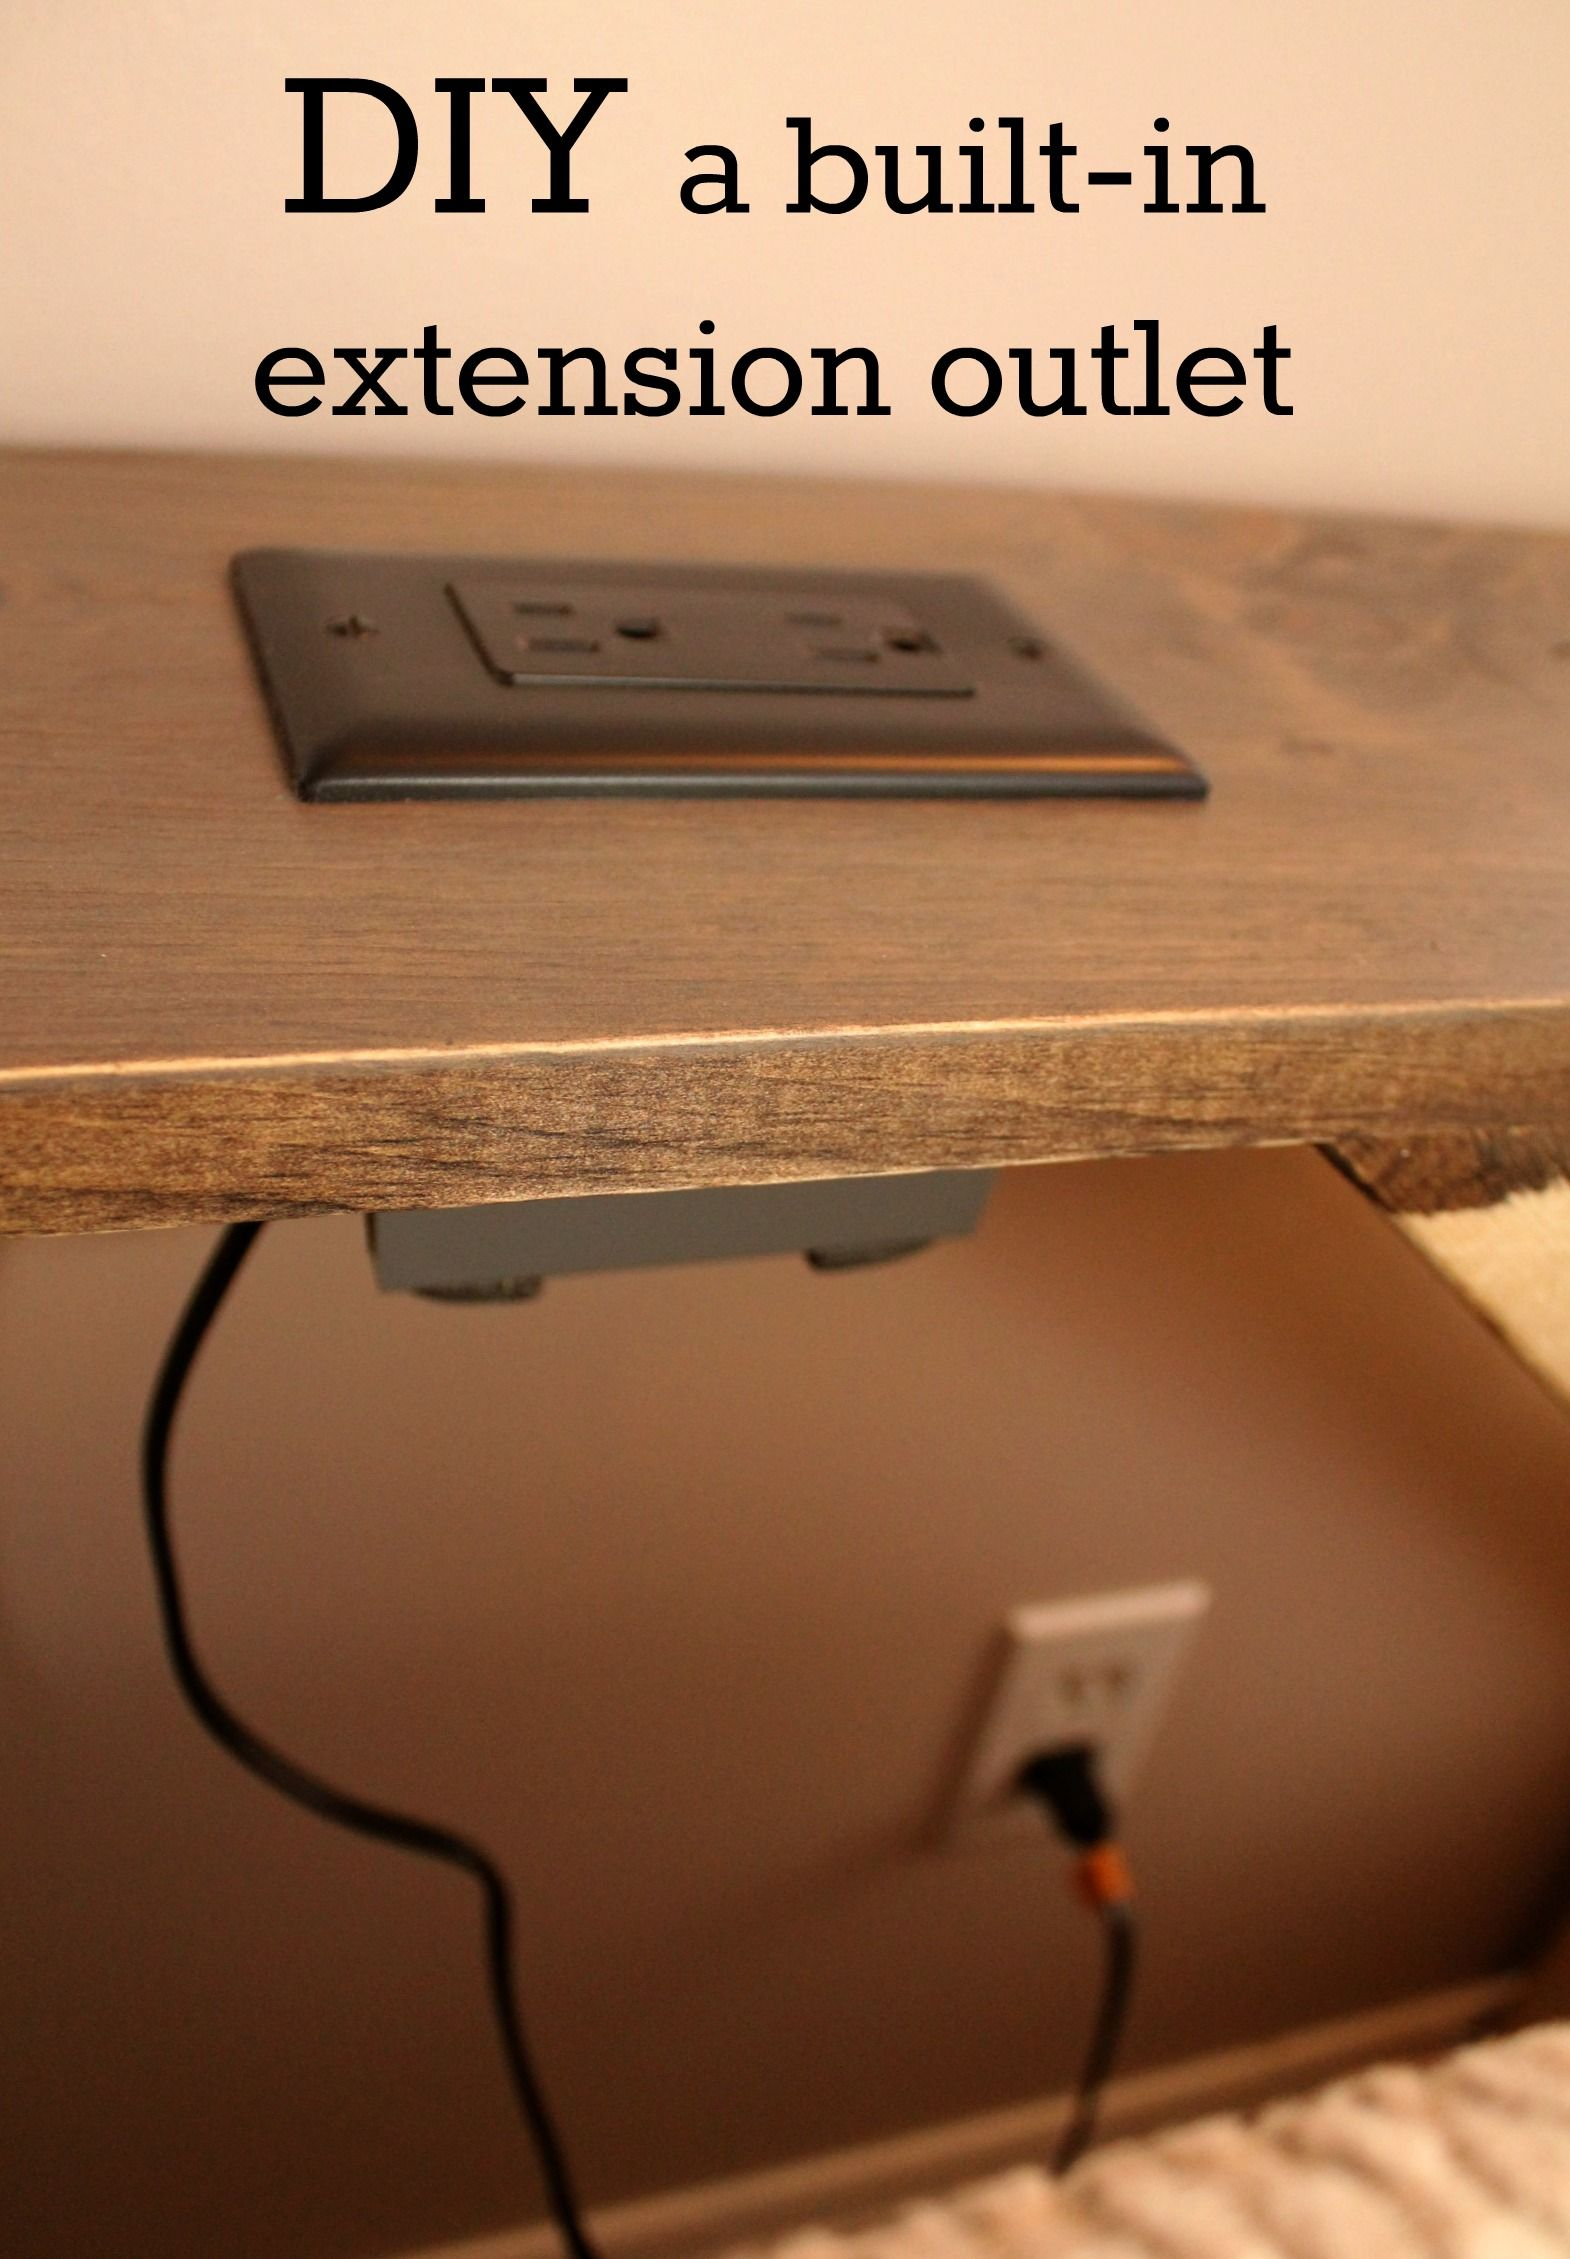 we converted a wall outlet into an extension outlet for our TV